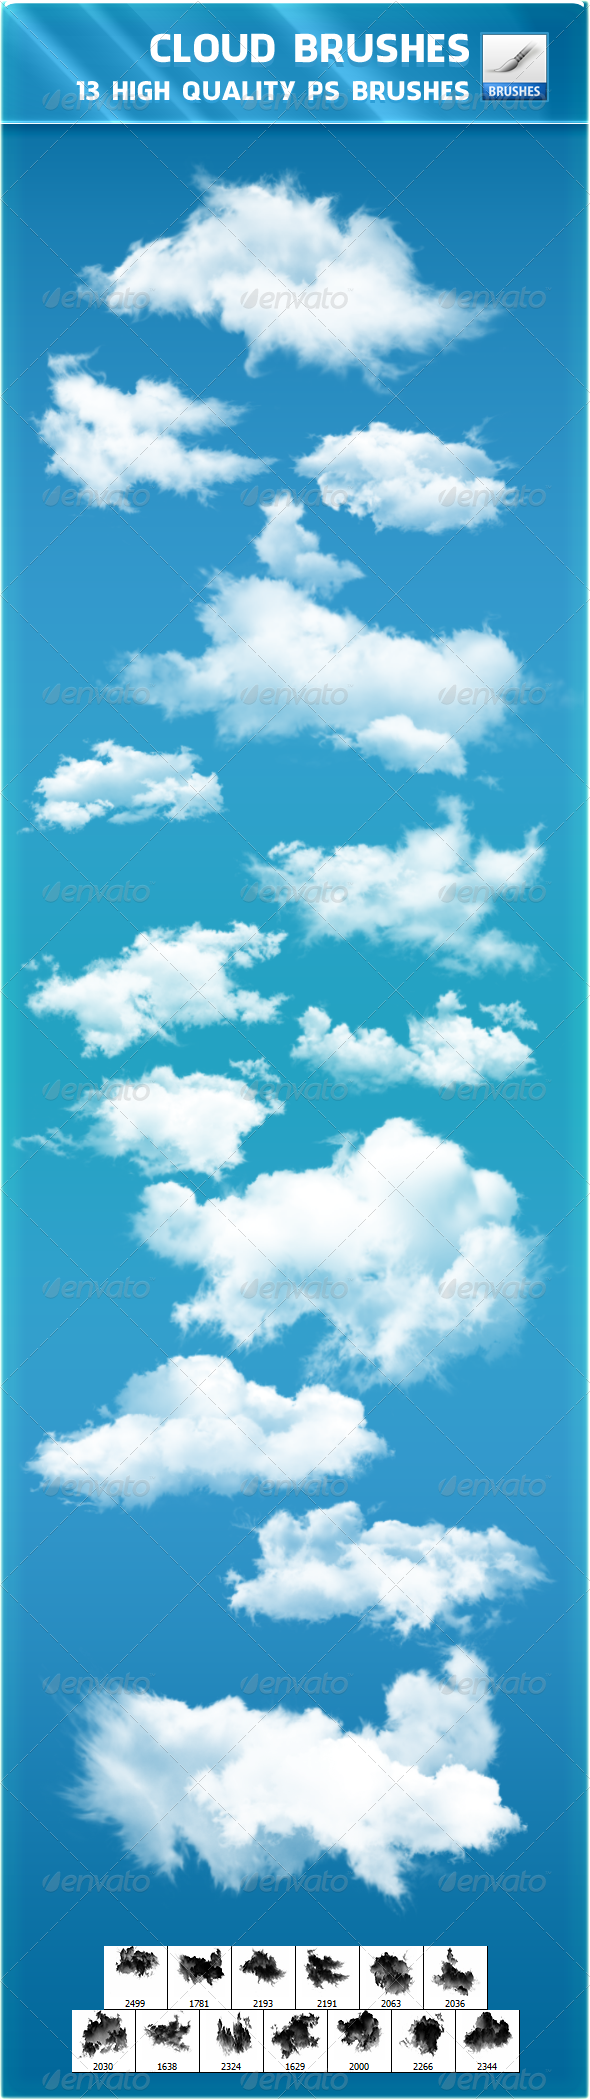 GraphicRiver Cloud Brushes 2415453